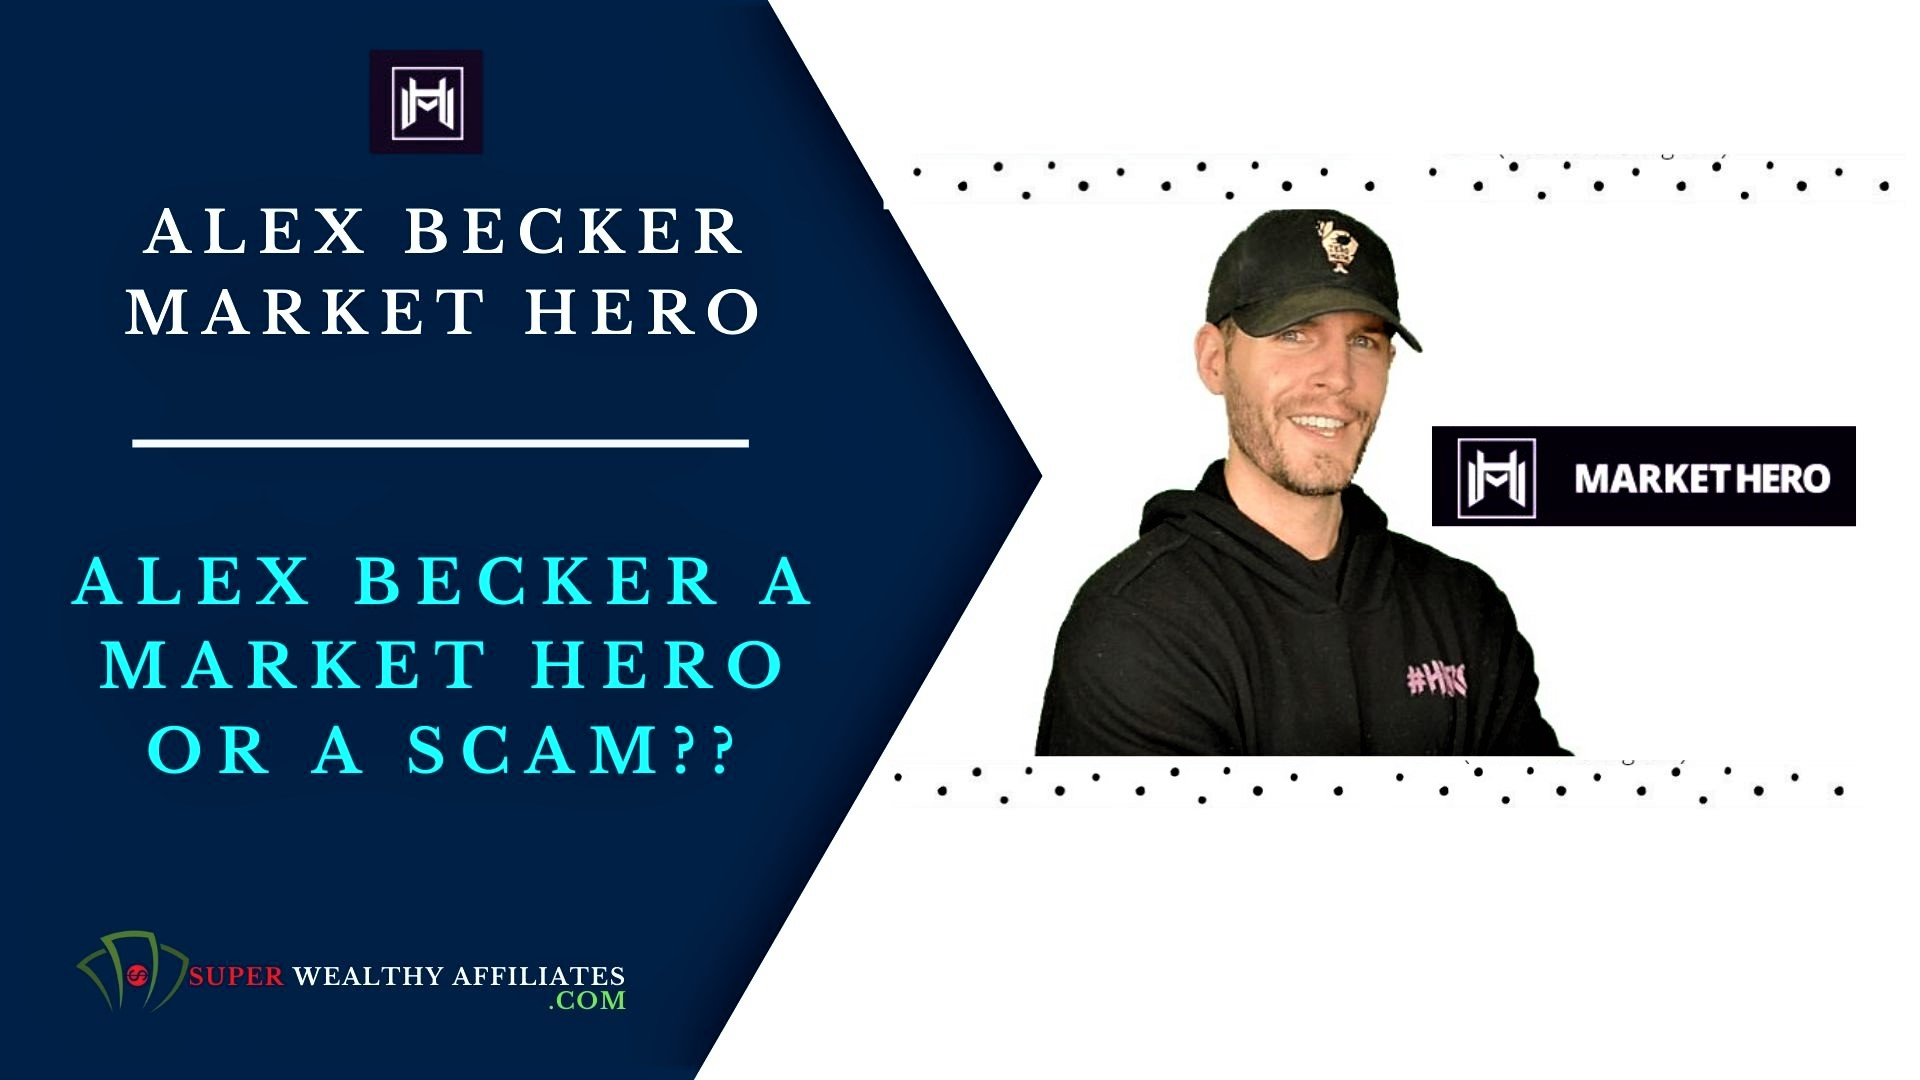 Alex-Becker-Market-Hero-Review.